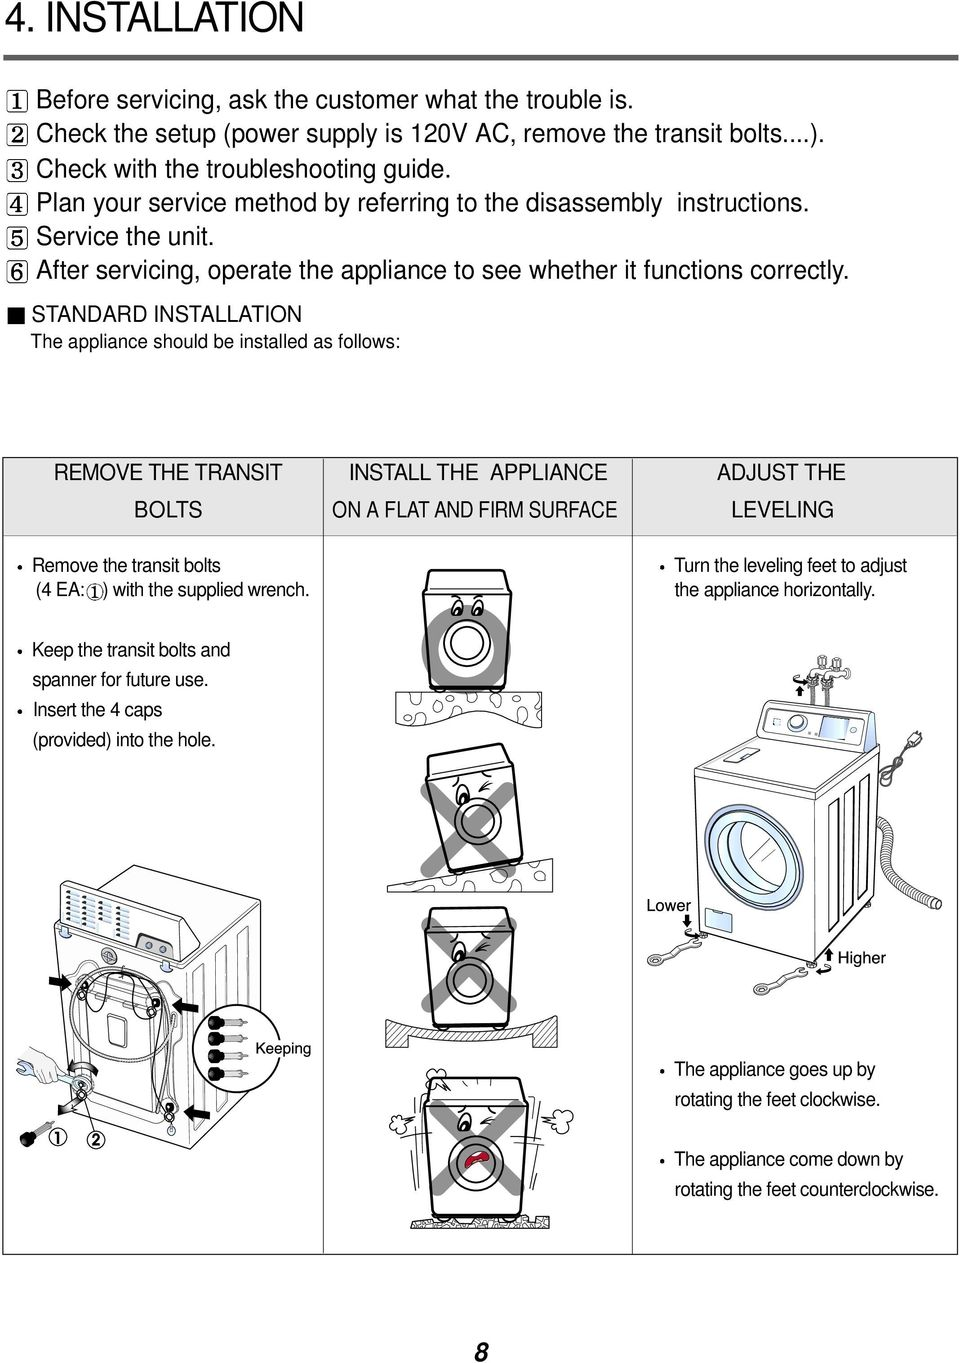 STANDARD INSTALLATION The appliance should be installed as follows: REMOVE THE TRANSIT INSTALL THE APPLIANCE ADJUST THE BOLTS ON A FLAT AND FIRM SURFACE LEVELING Remove the transit bolts Turn the